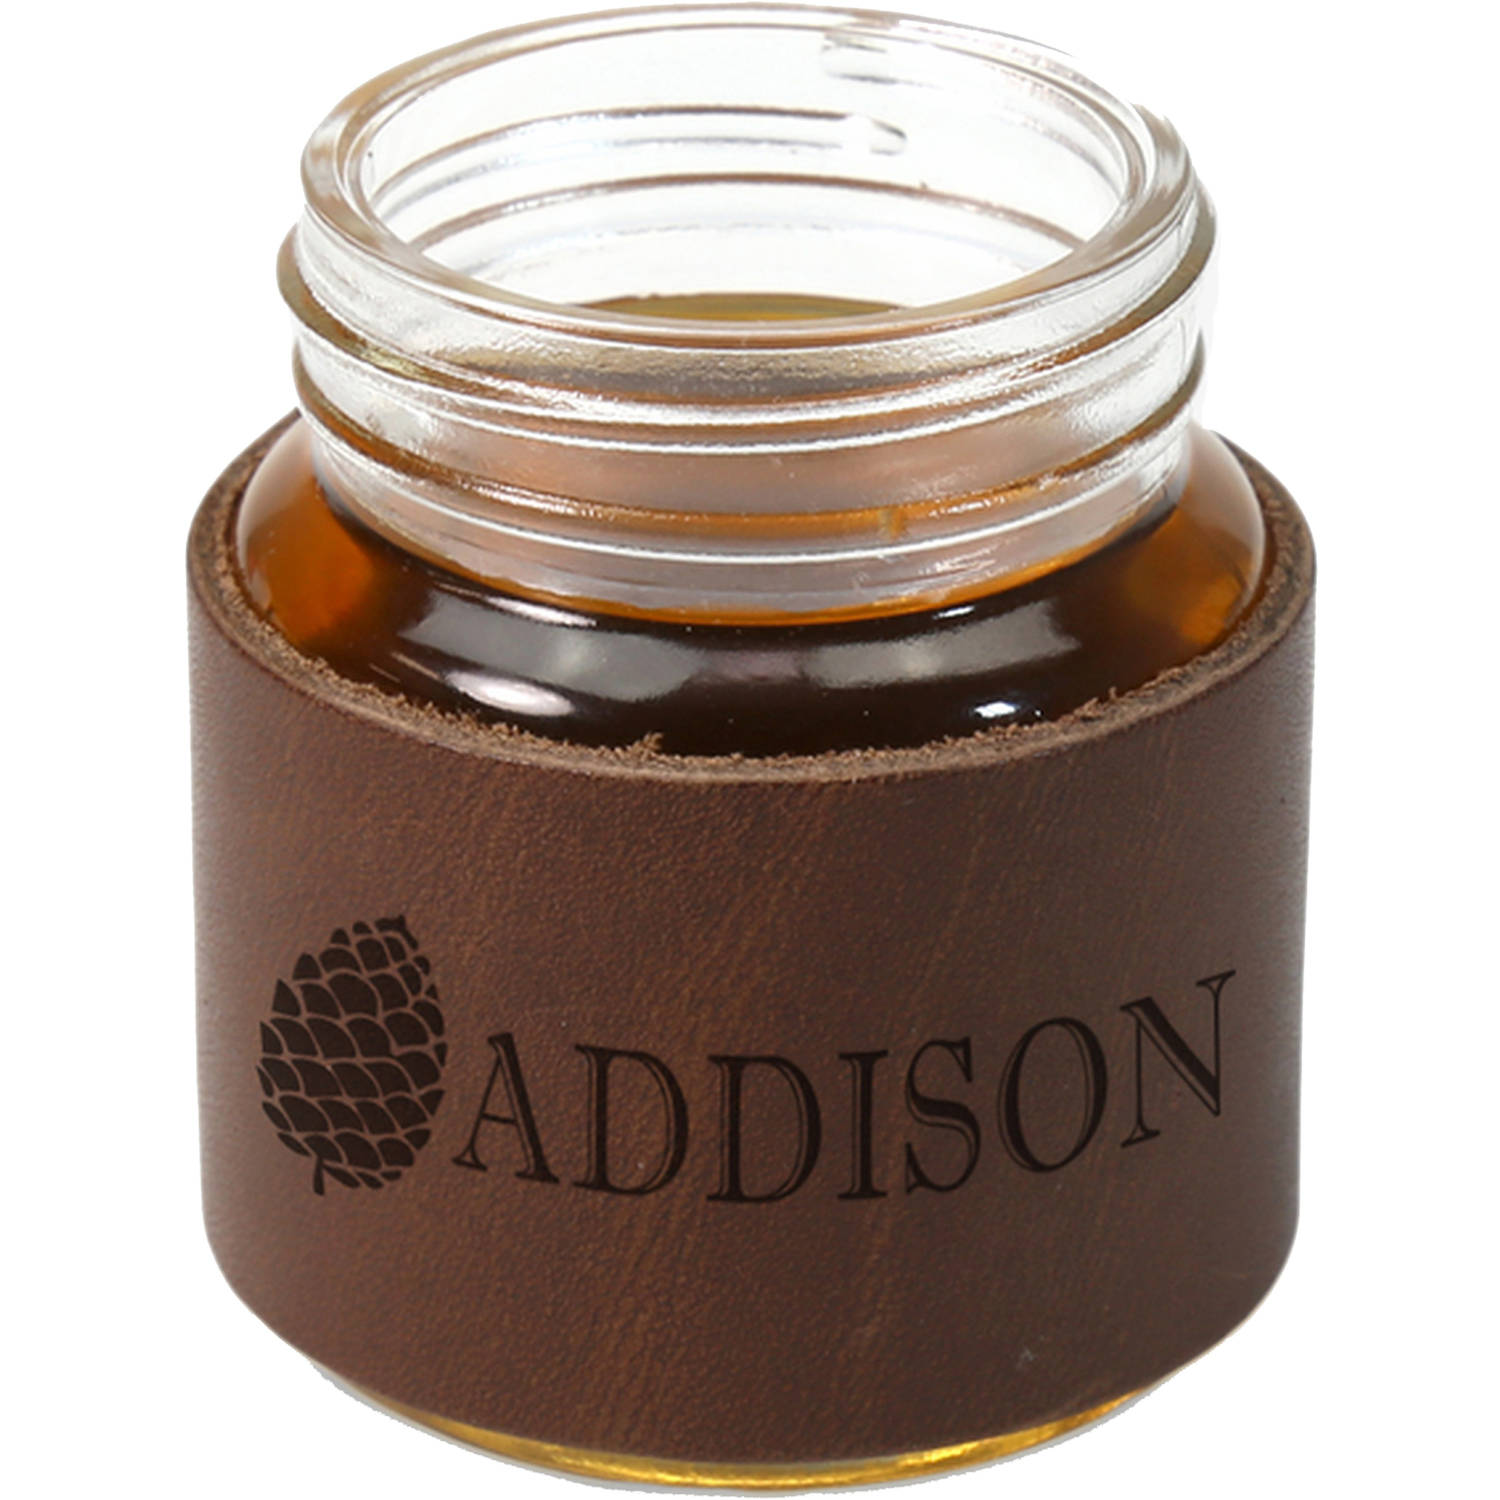 Personalized Leather Mini Mason Jar 2 Oz Shot Glass Holds 2oz Walmart Com Walmart Com